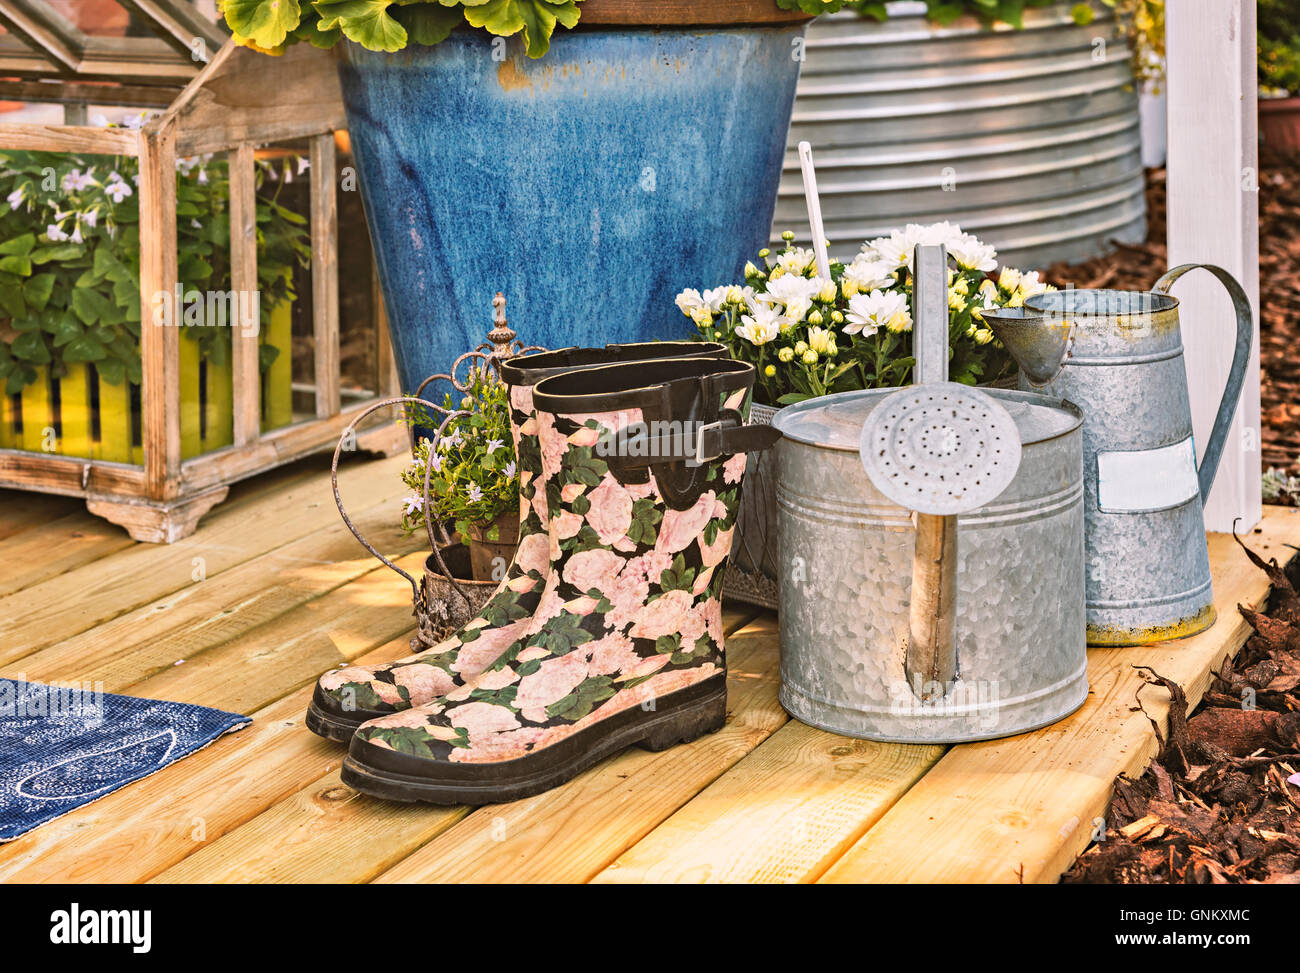 Image of rubber boot and watering cans on wooden terrace. Stock Photo